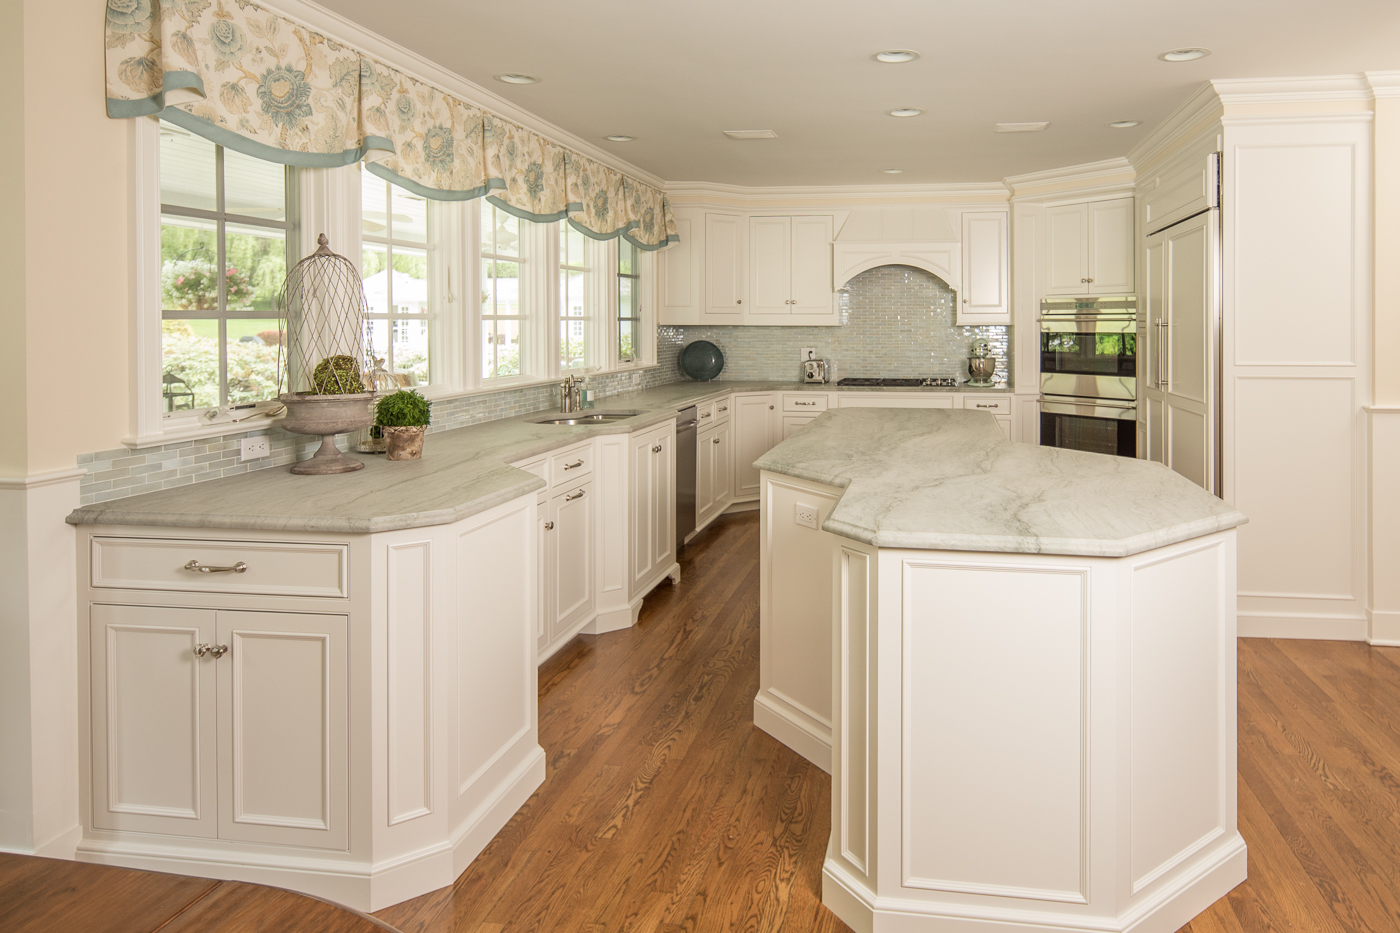 Kitchen Design Ct Alluring Ackley Cabinet Llc Design Decoration